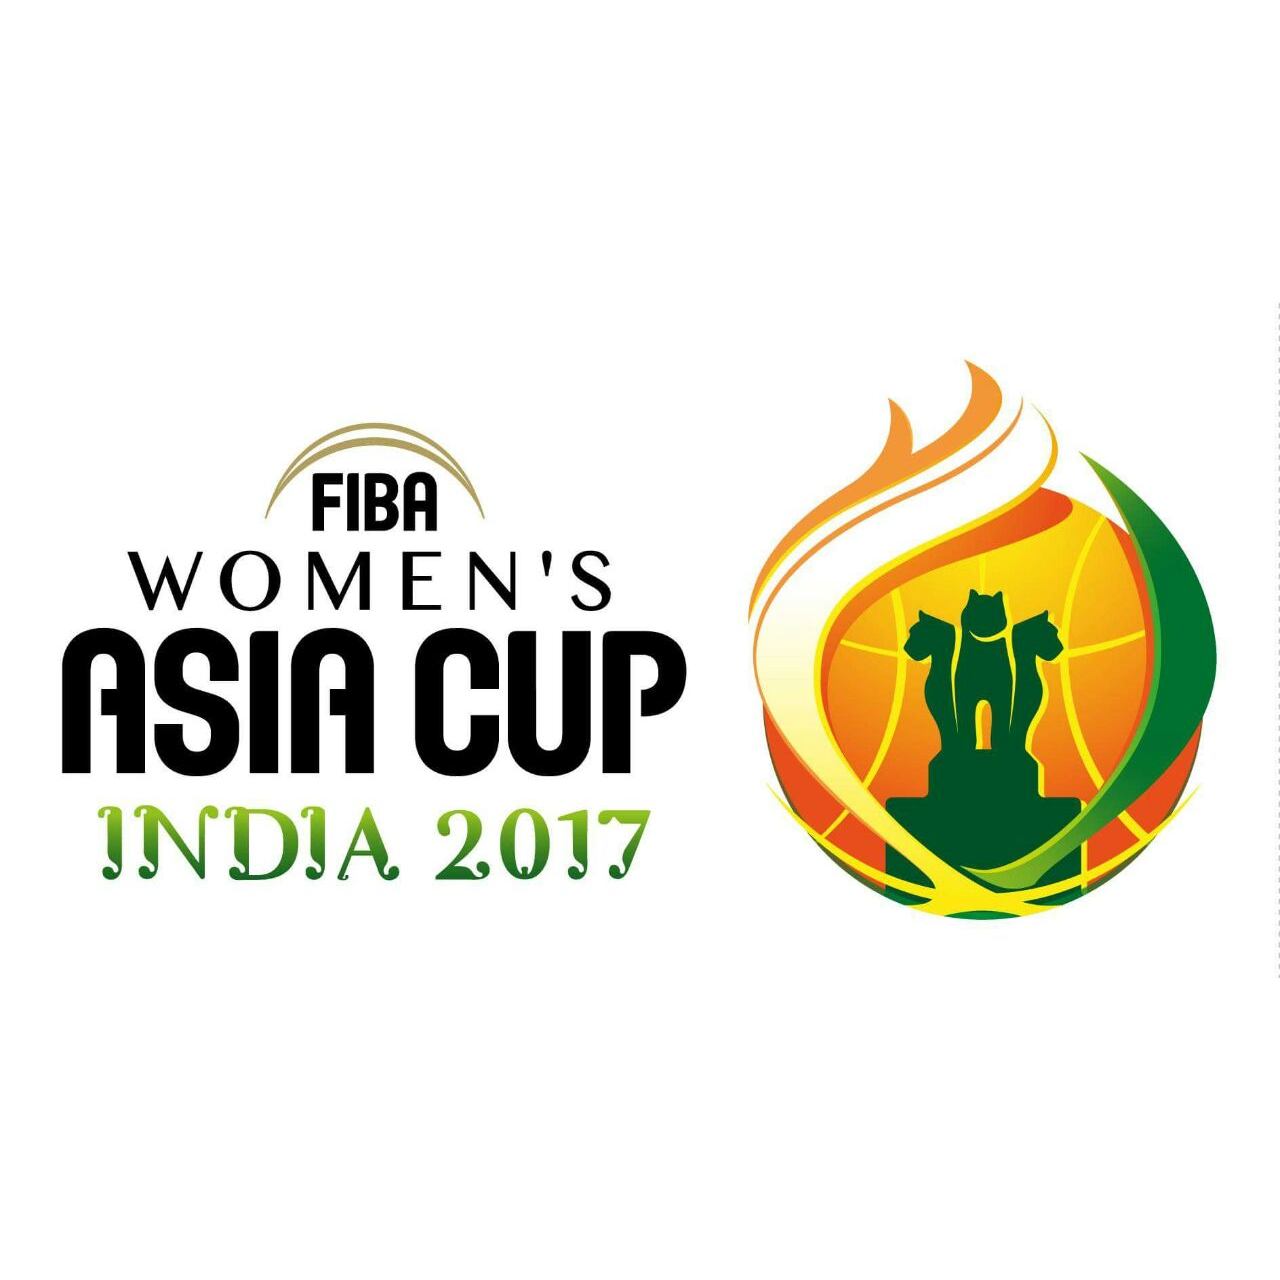 2017 FIBA Basketball Women's Asia Cup